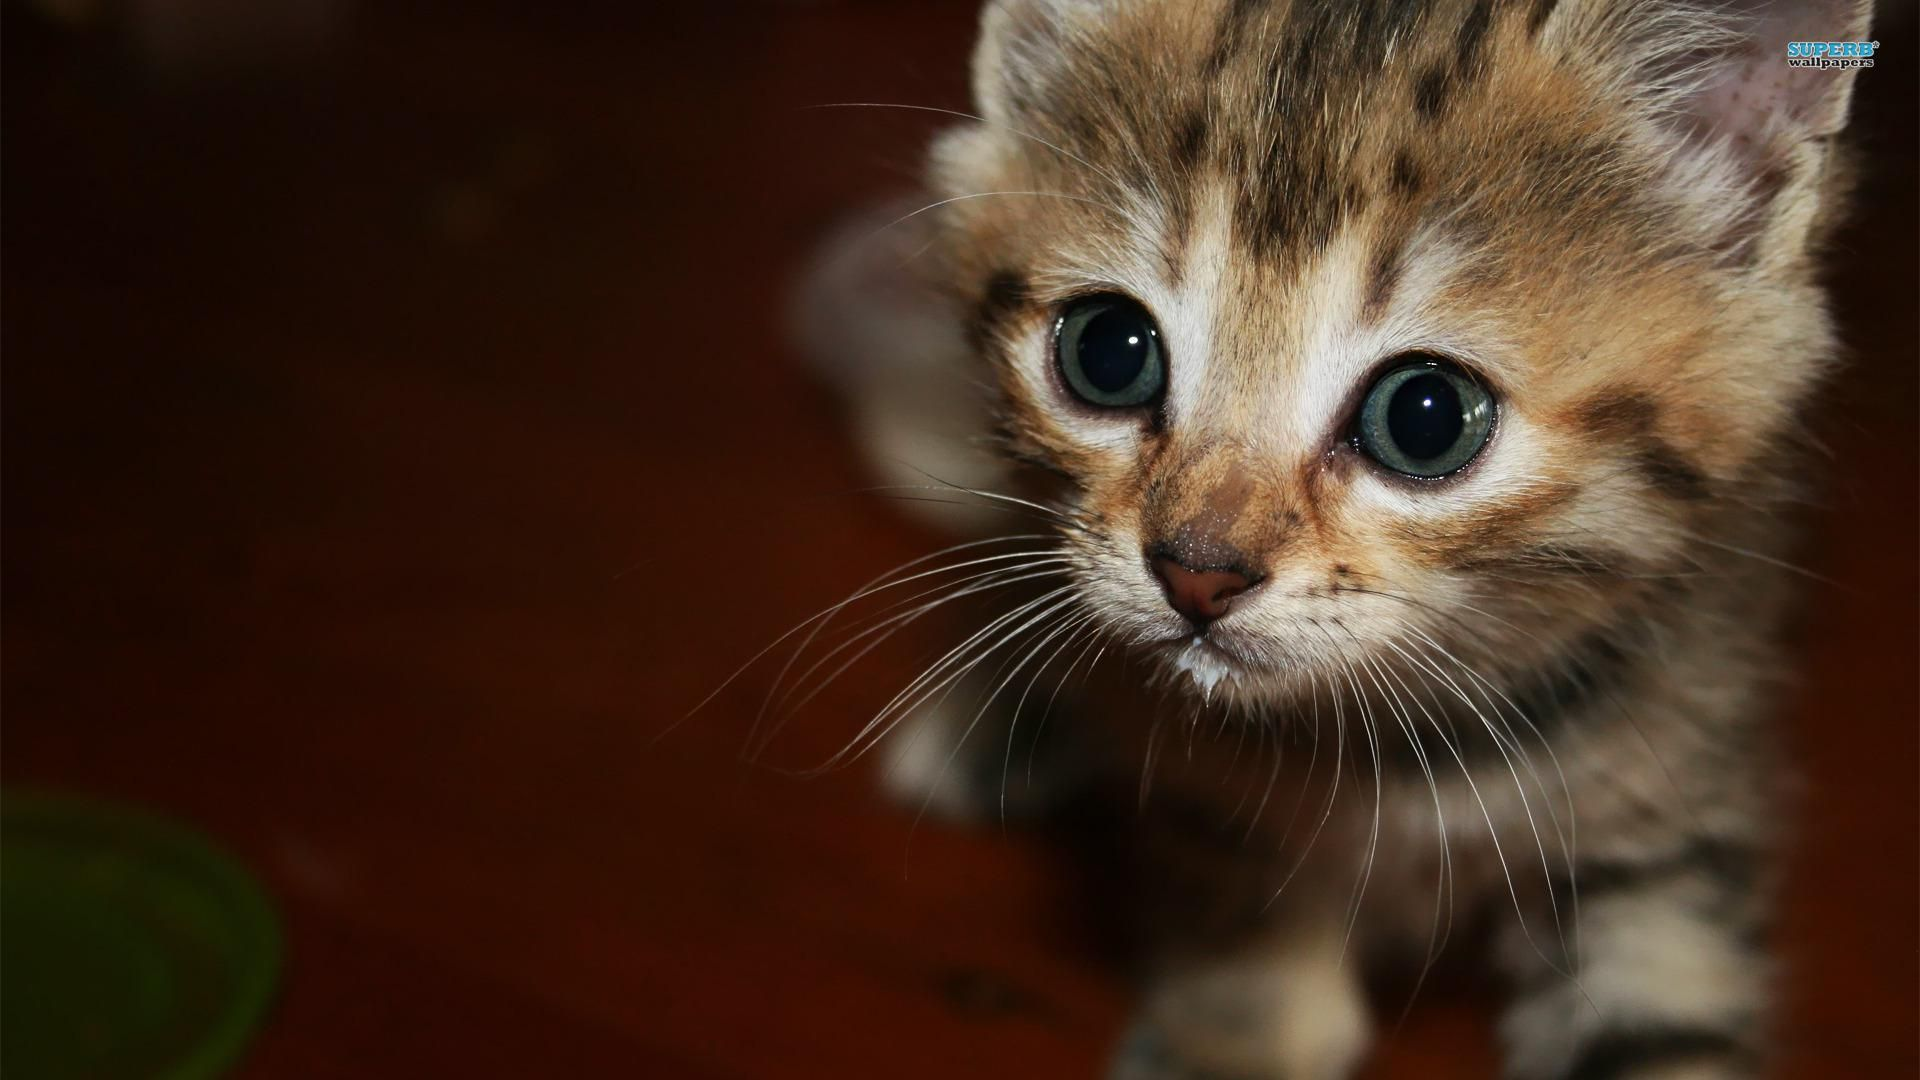 Happy kittens hd wallpapers i have a pc i have a pc - Kitten backgrounds ...